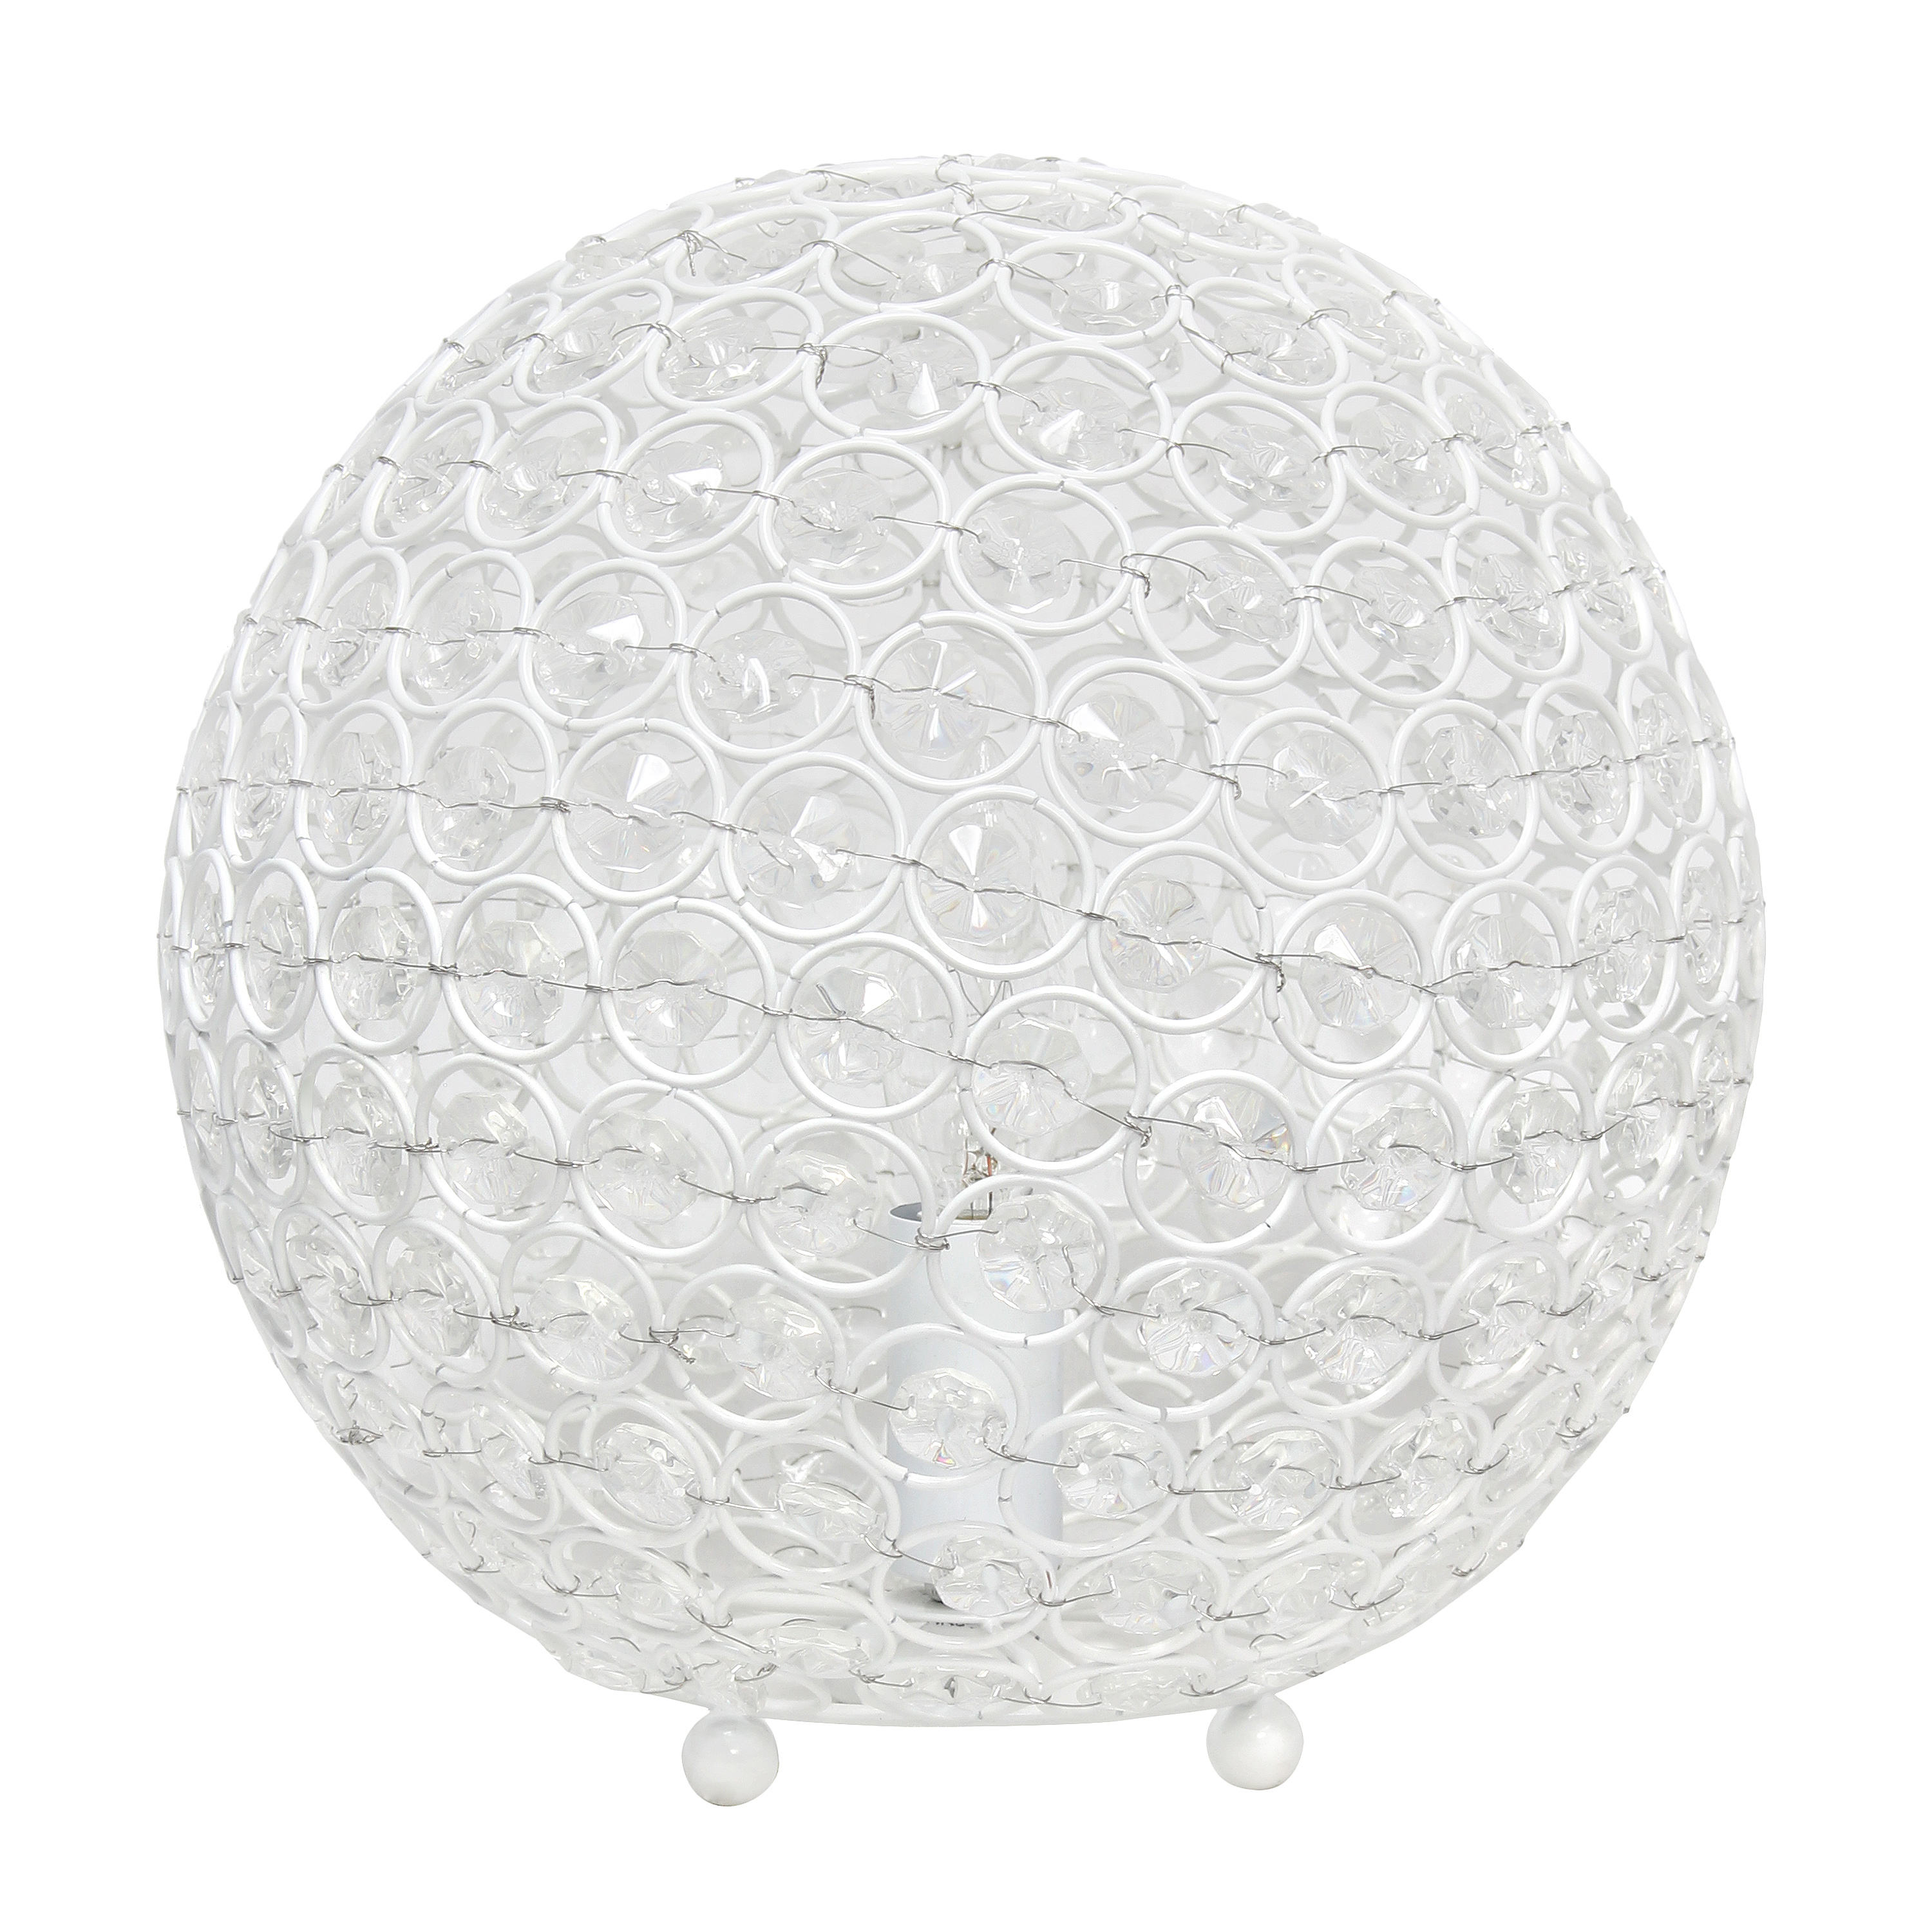 Elegant Designs Elipse 10 Inch Crystal Ball Sequin Table Lamp, White